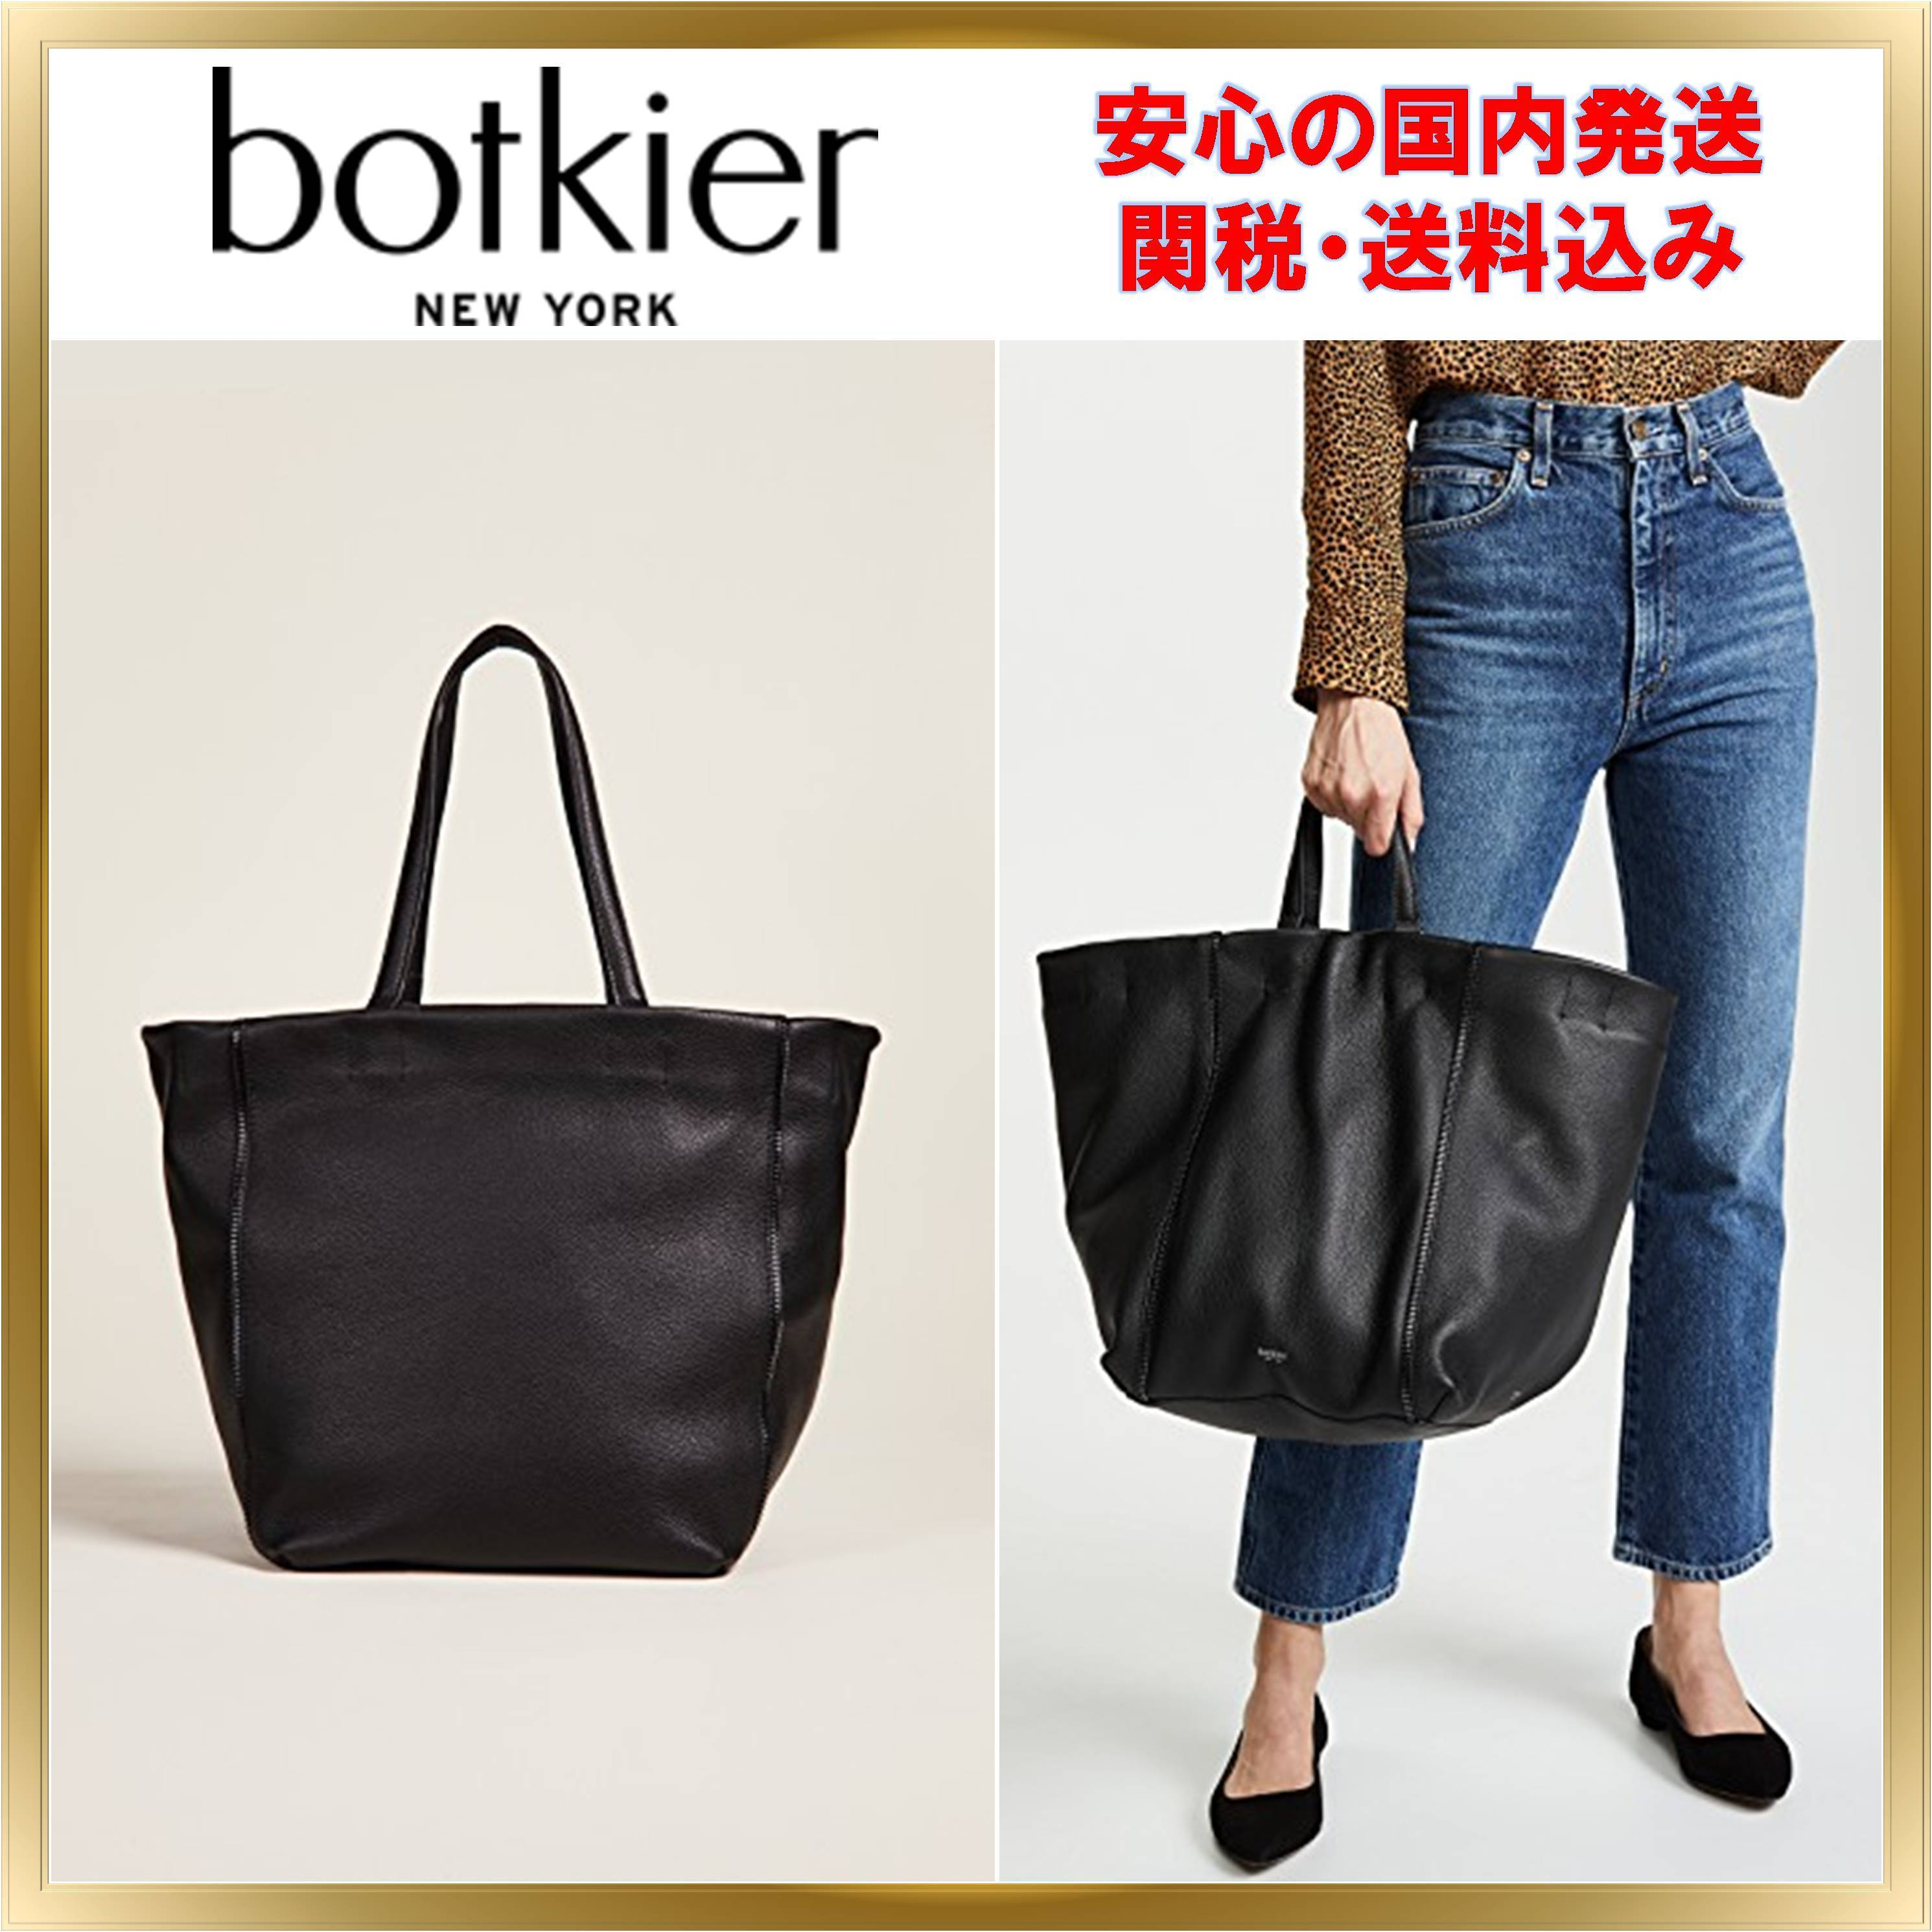 NYセレブ◇Botkier◇Wooster Large トートバッグ 【関税送料込】 (Botkier/トートバッグ) 39111754